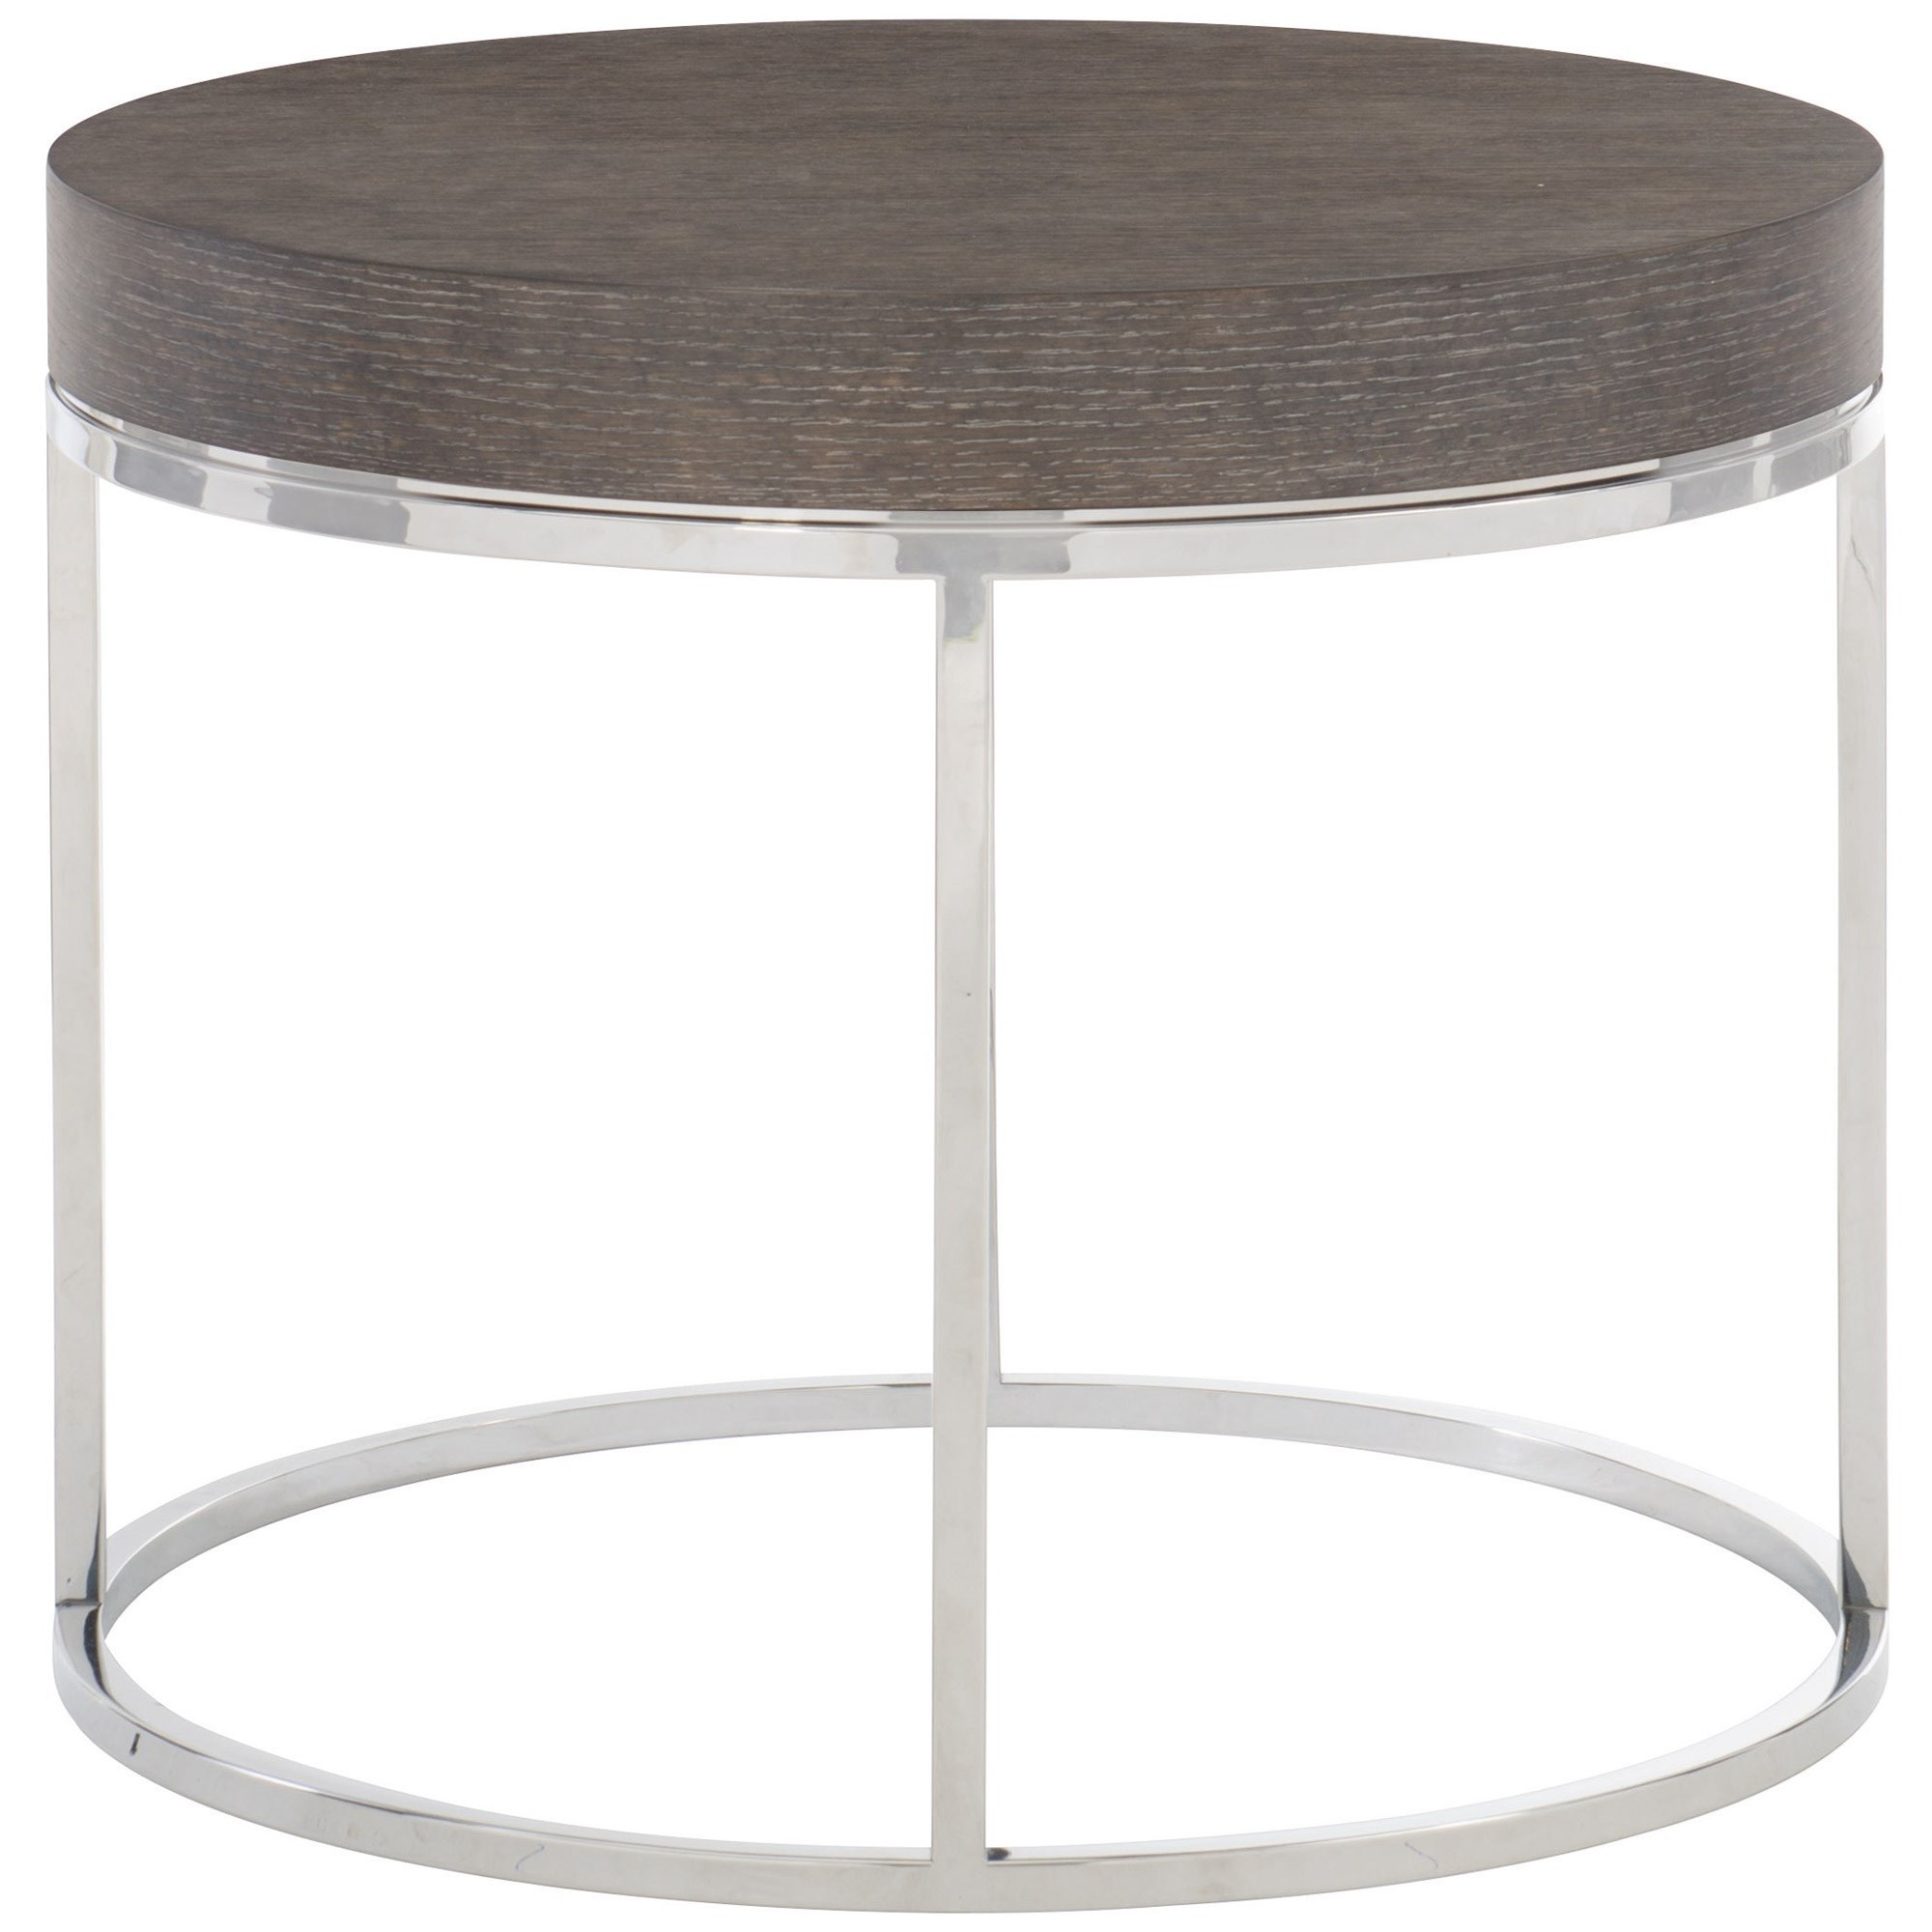 491 122 Contemporary Round End Table